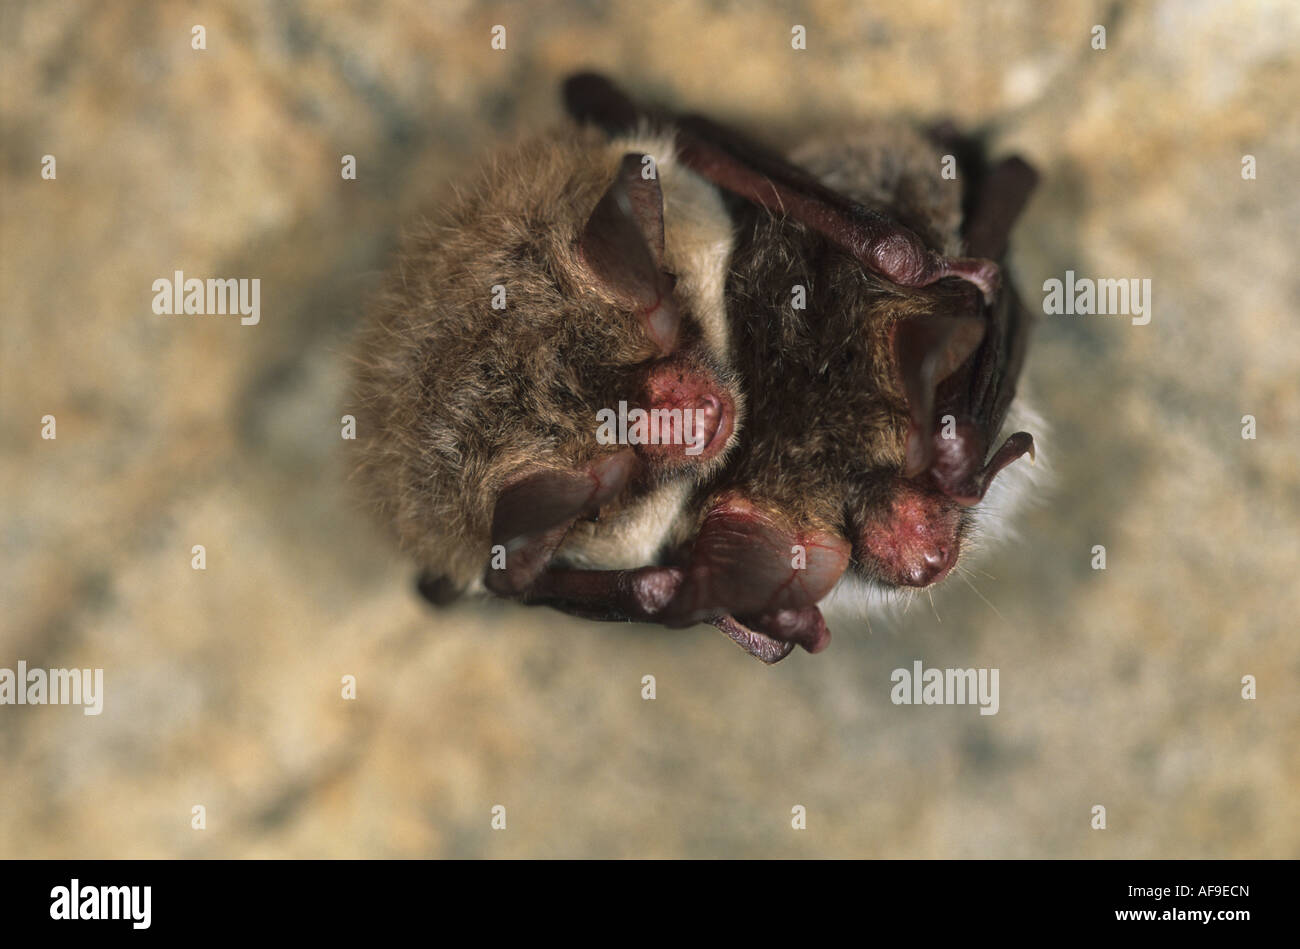 two hibernating Bechstein's bats in a disused bunker. - Stock Image